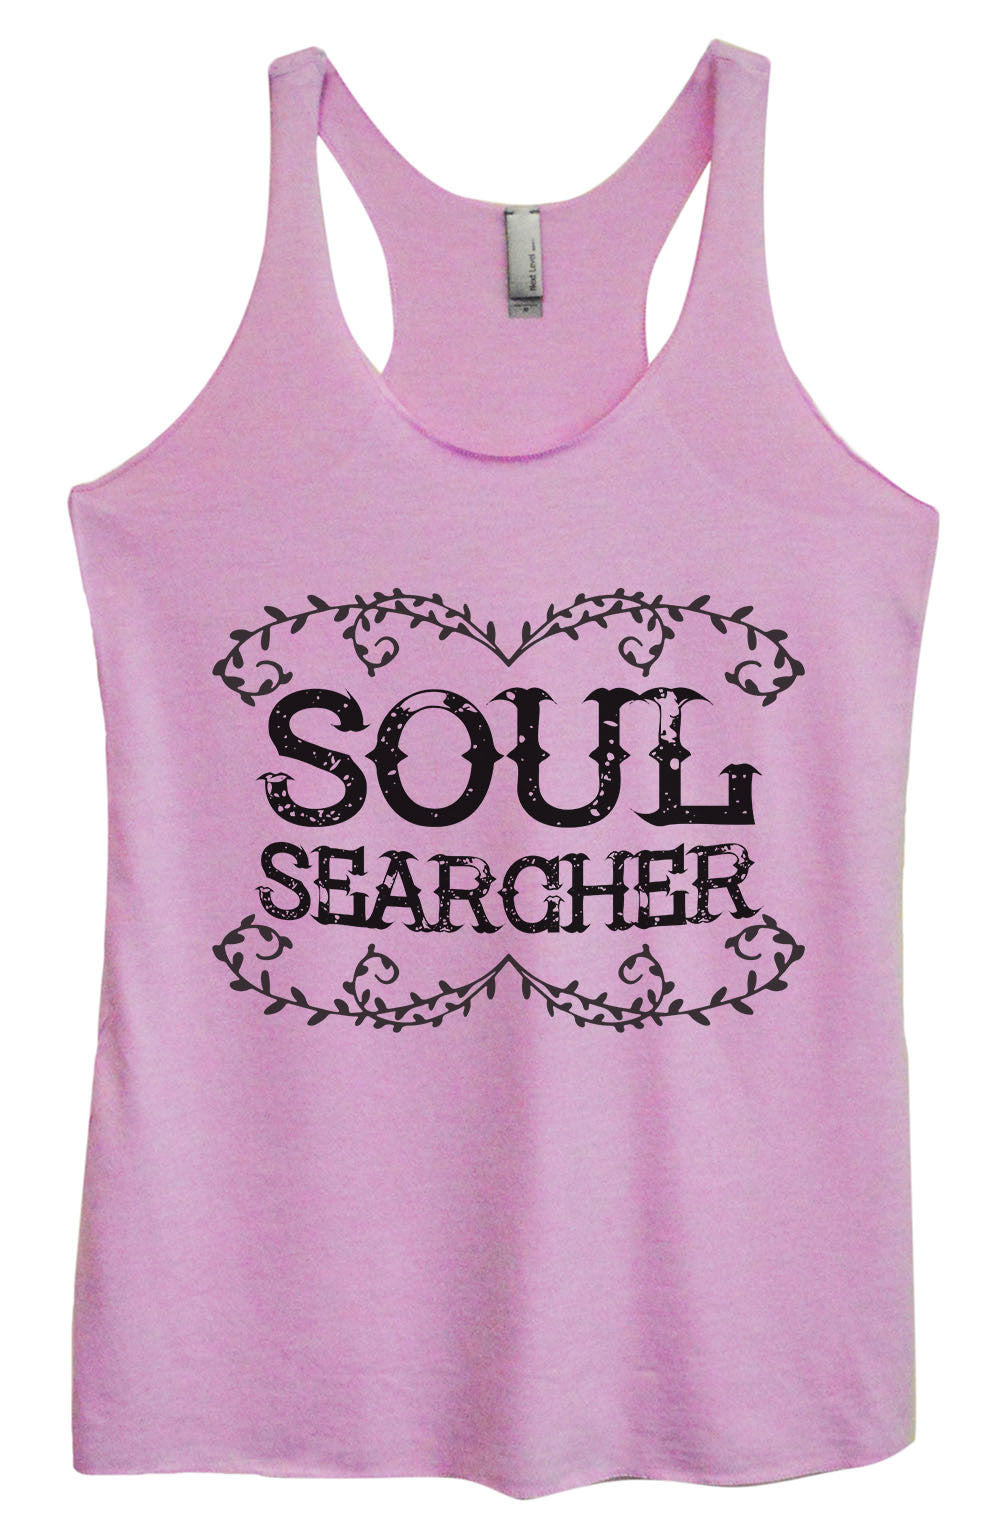 Womens Fashion Triblend Tank Top - Soul Searcher - Tri-1558 - Funny Shirts Tank Tops Burnouts and Triblends  - 3